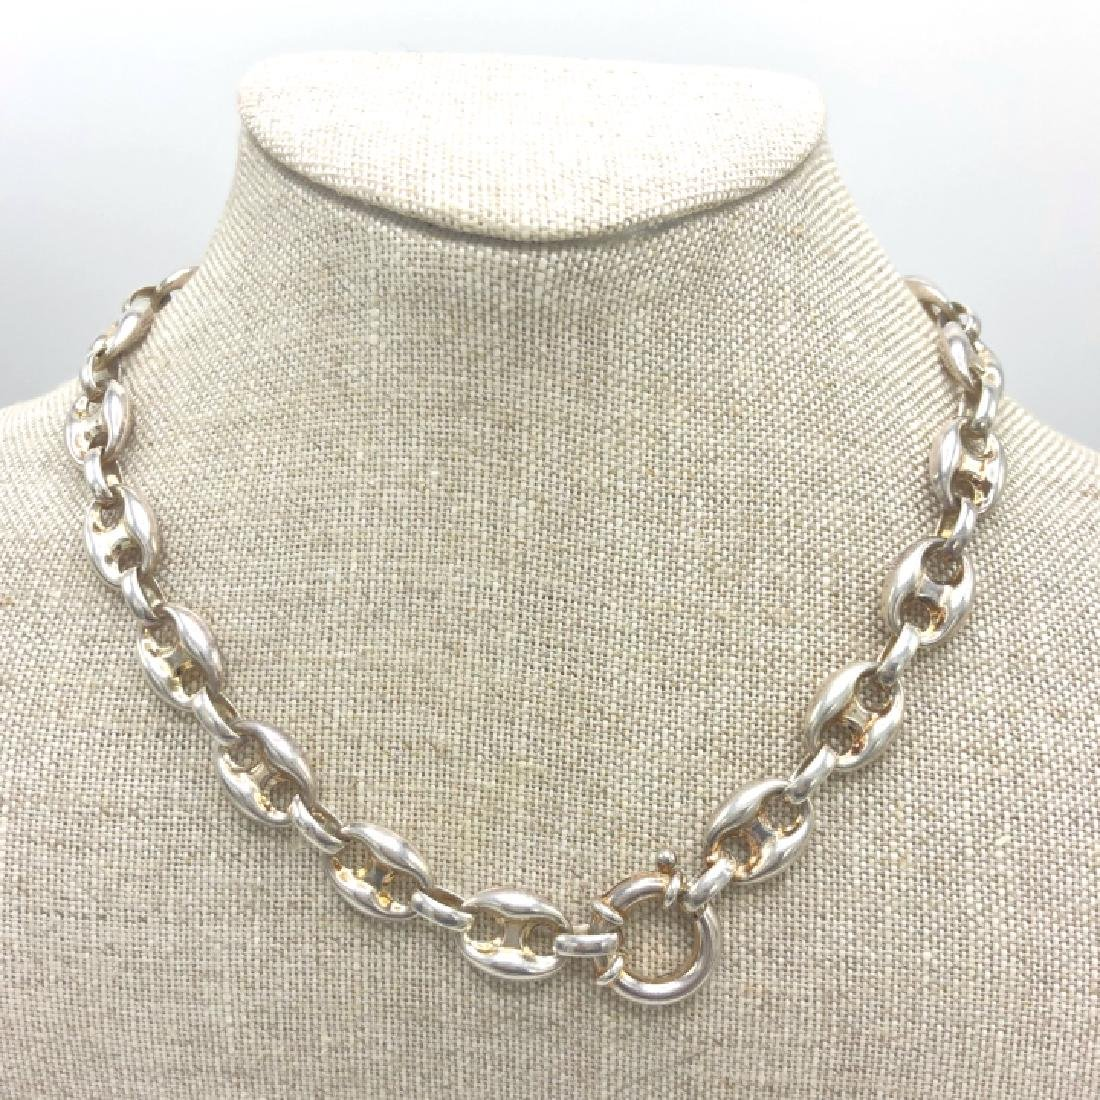 Vintage Sterling Gucci Style Marnier Link Chain - 3